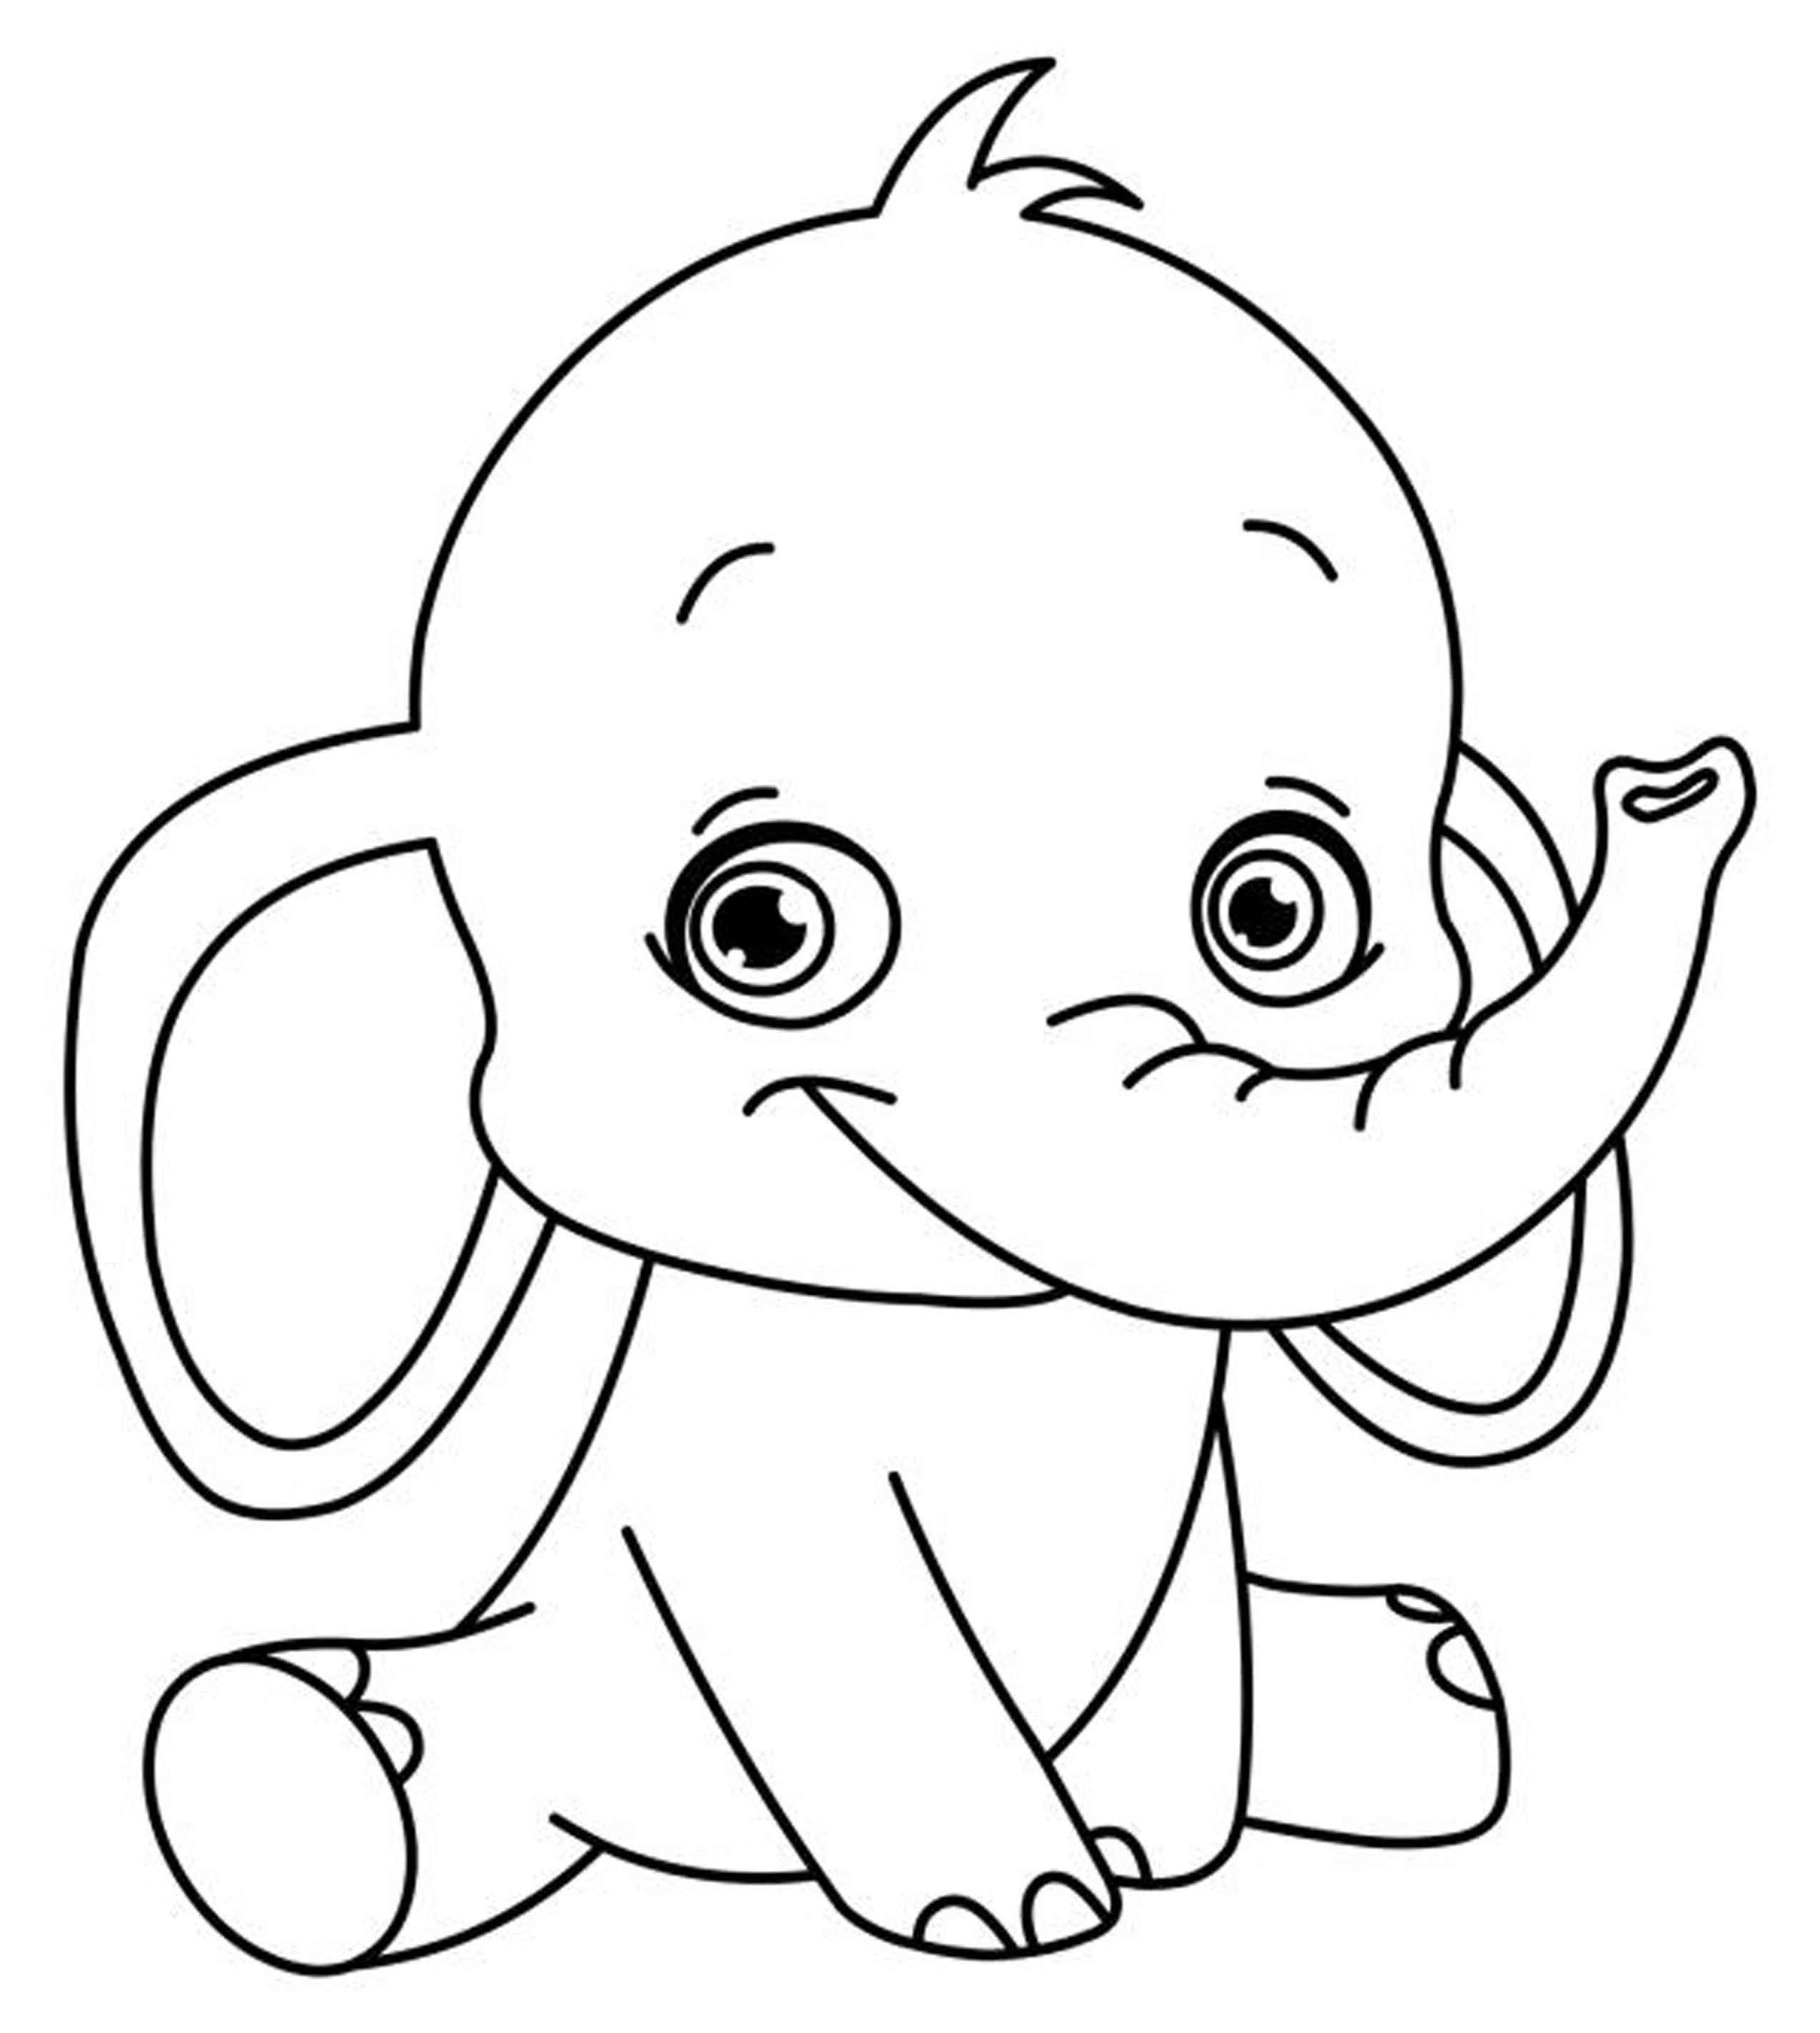 Easy Coloring Pages Printable